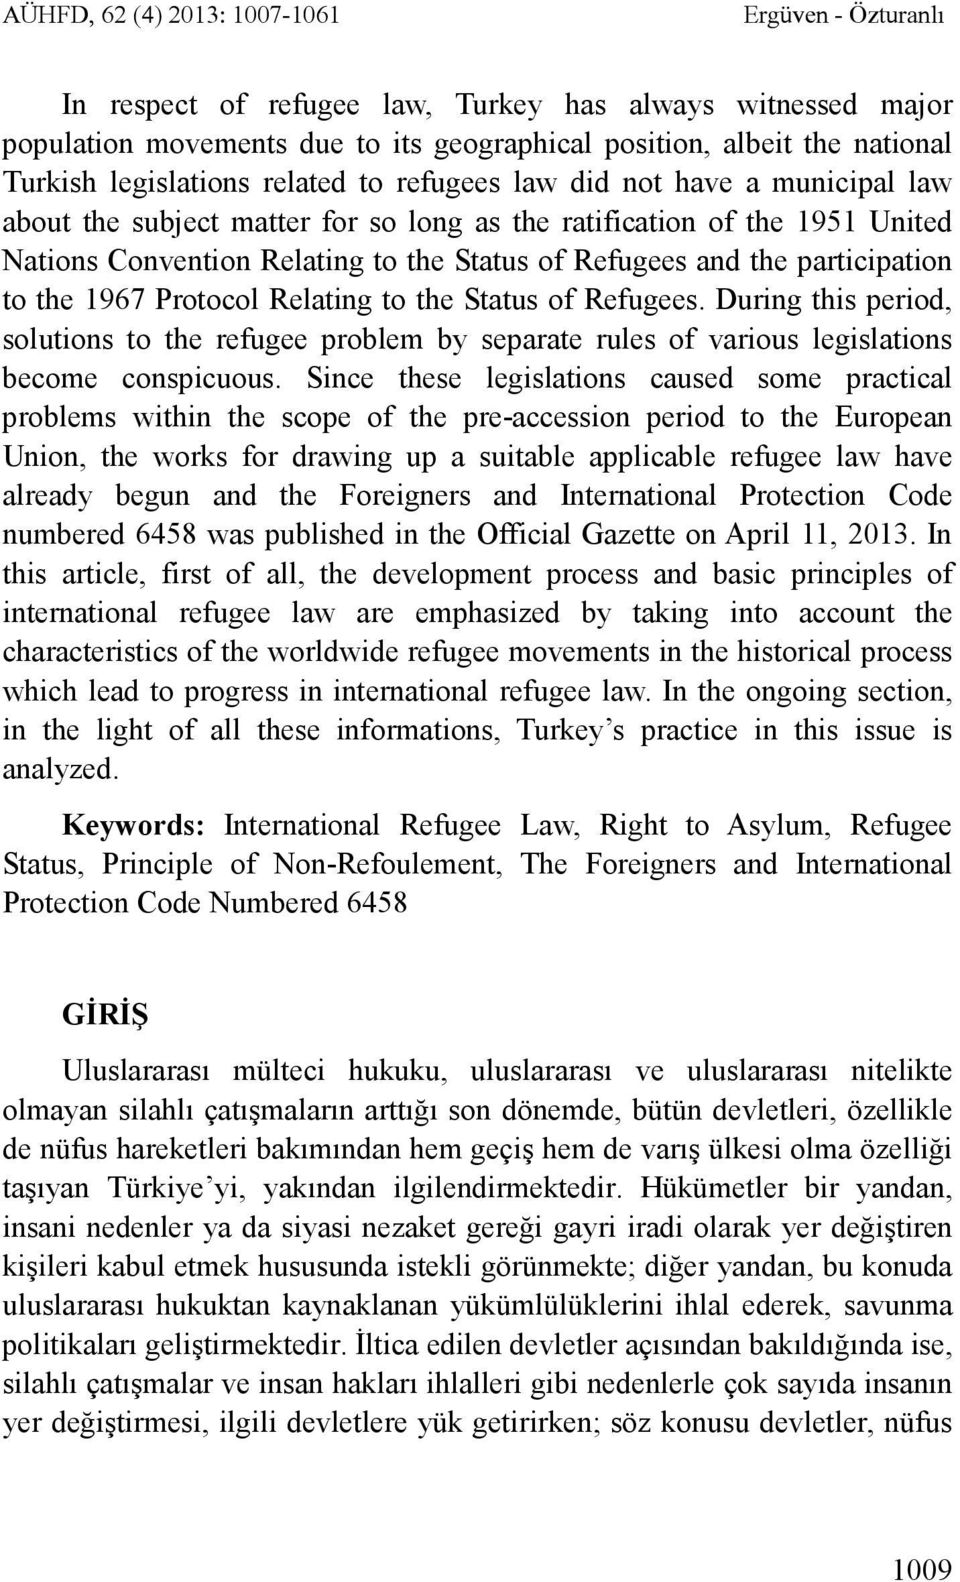 the participation to the 1967 Protocol Relating to the Status of Refugees. During this period, solutions to the refugee problem by separate rules of various legislations become conspicuous.